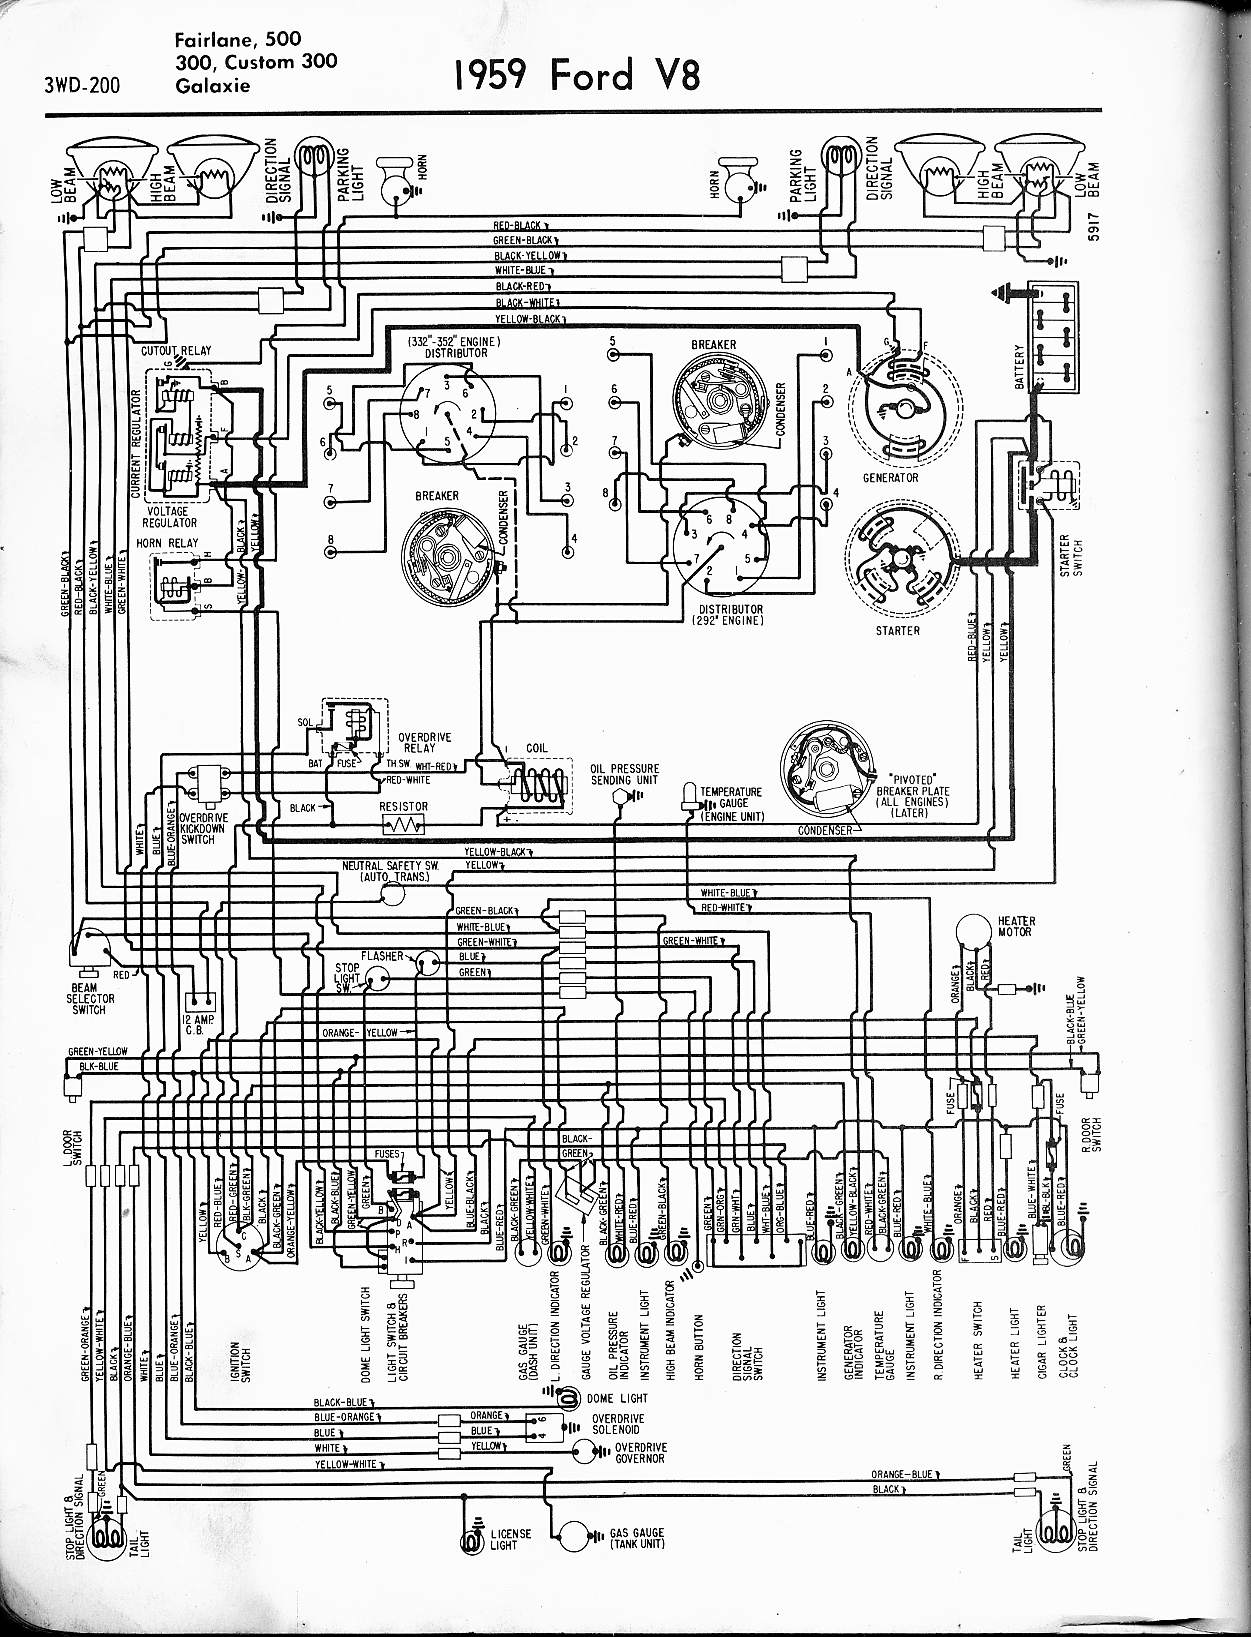 1959 Ford Galaxie Wiring Diagram